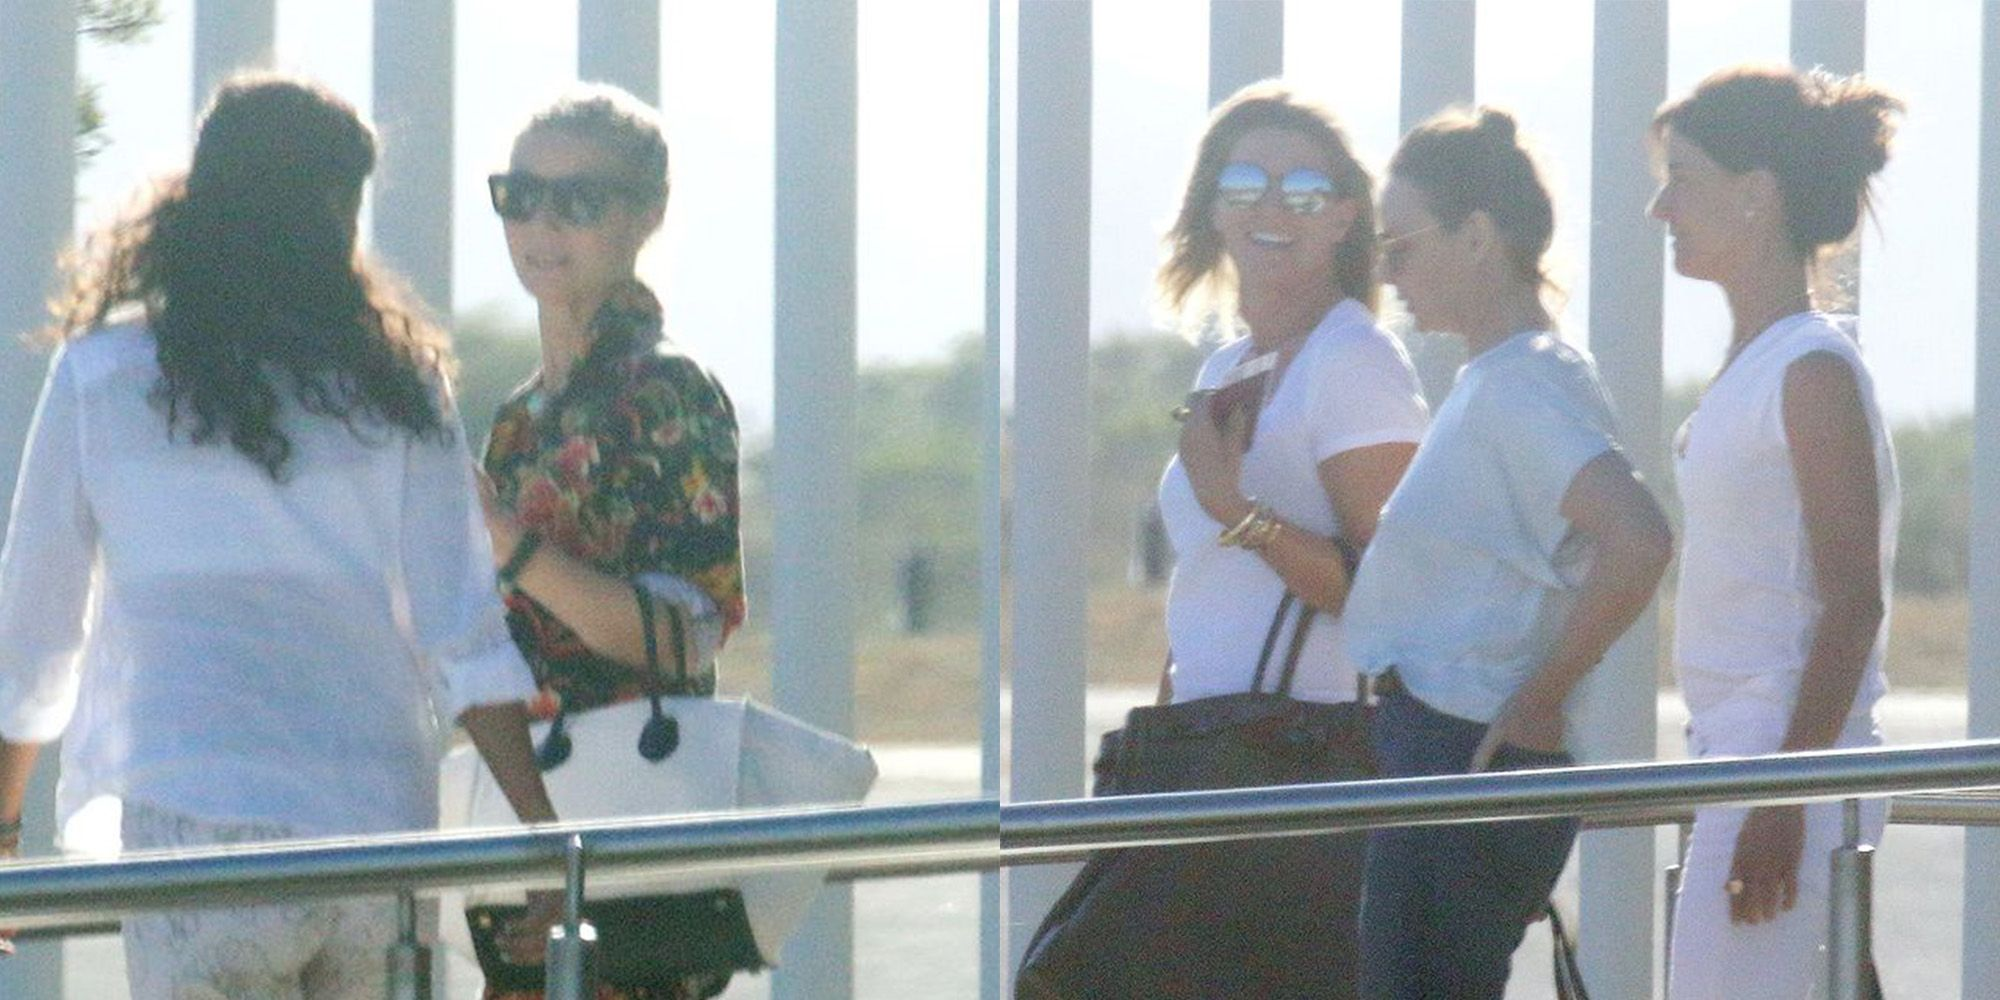 3f63413a0b8 Gwyneth Paltrow s Bachelorette Party In Mexico With Celebrity Friends